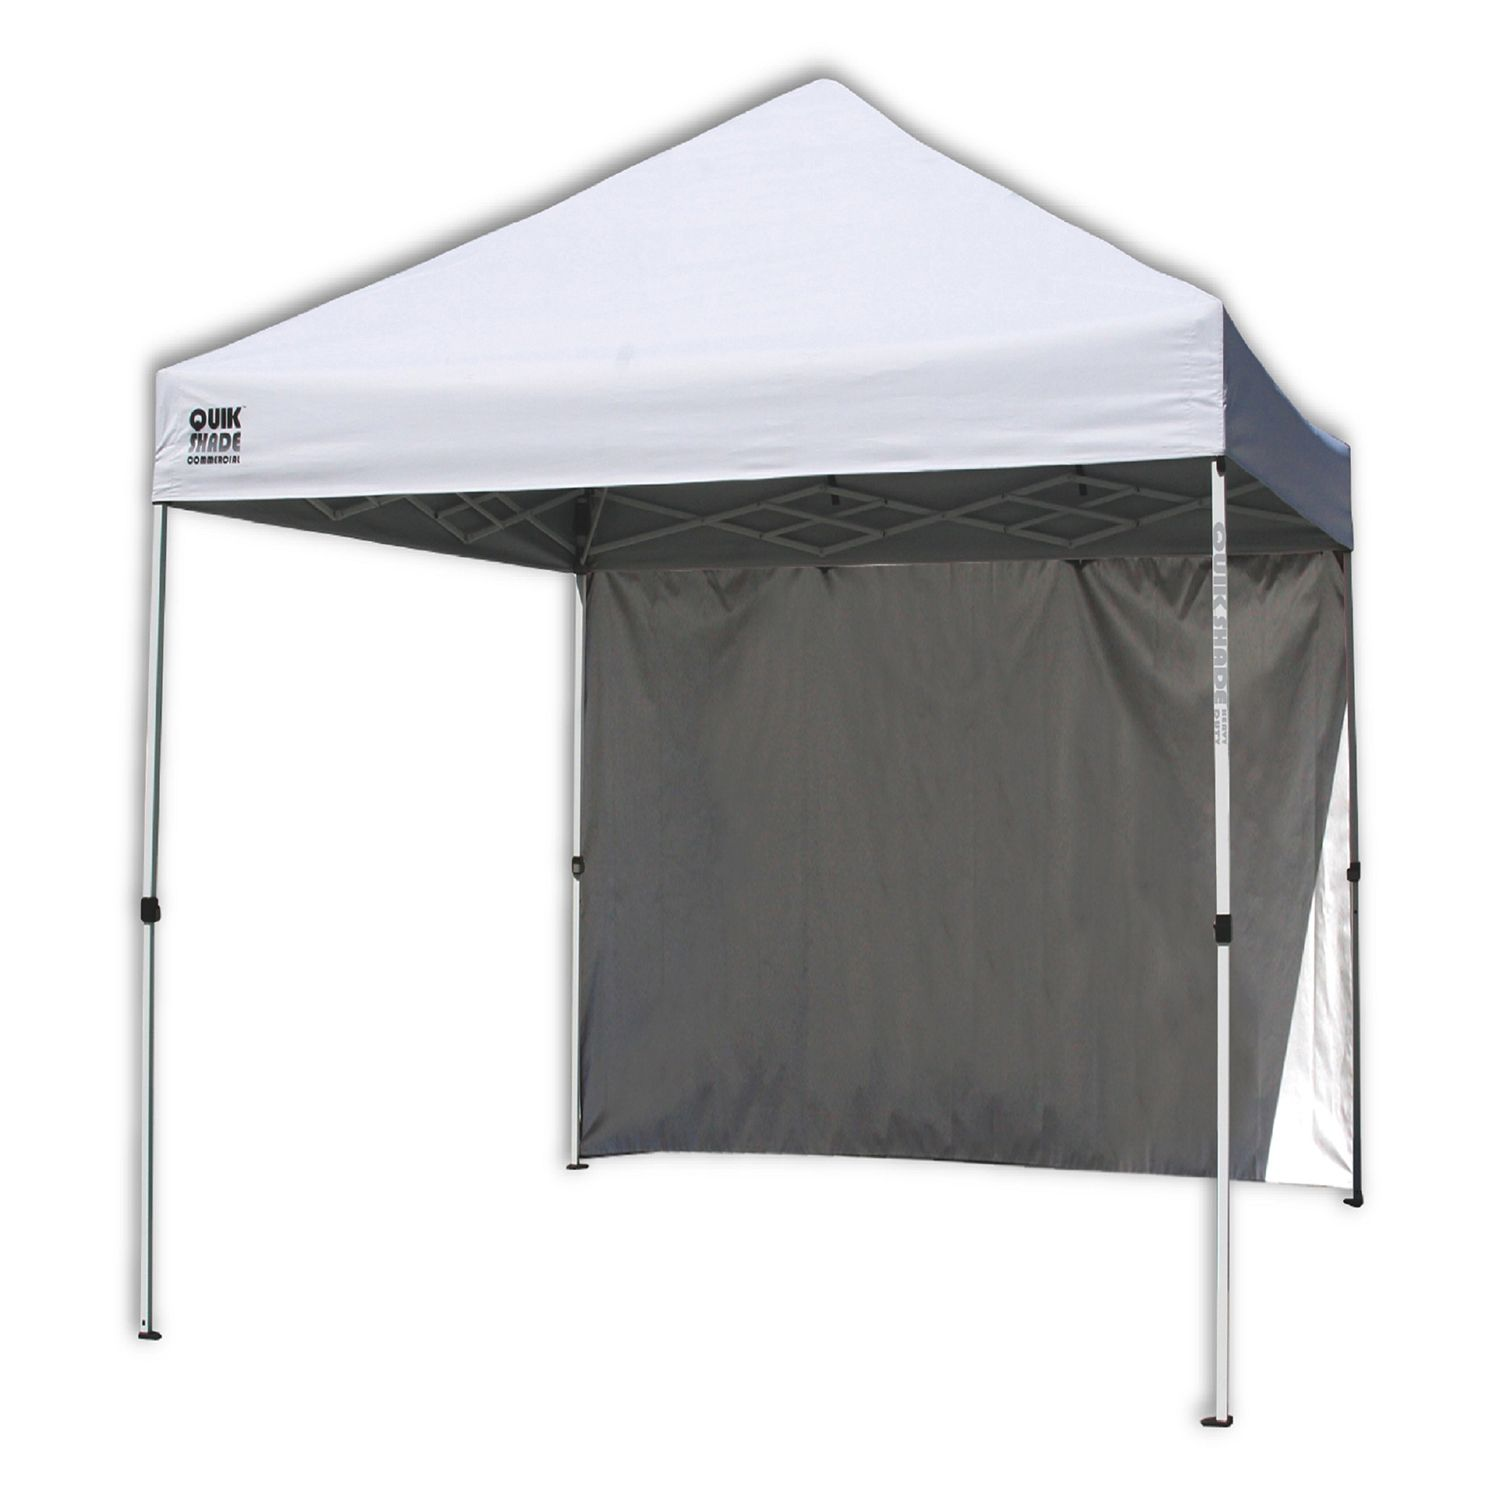 Quik Shade Commercial 100 10u0027 x 10u0027 Instant Canopy Shelter  sc 1 st  Kohlu0027s & Canopies u0026 Shelters - Outdoor Recreation Sports u0026 Fitness | Kohlu0027s